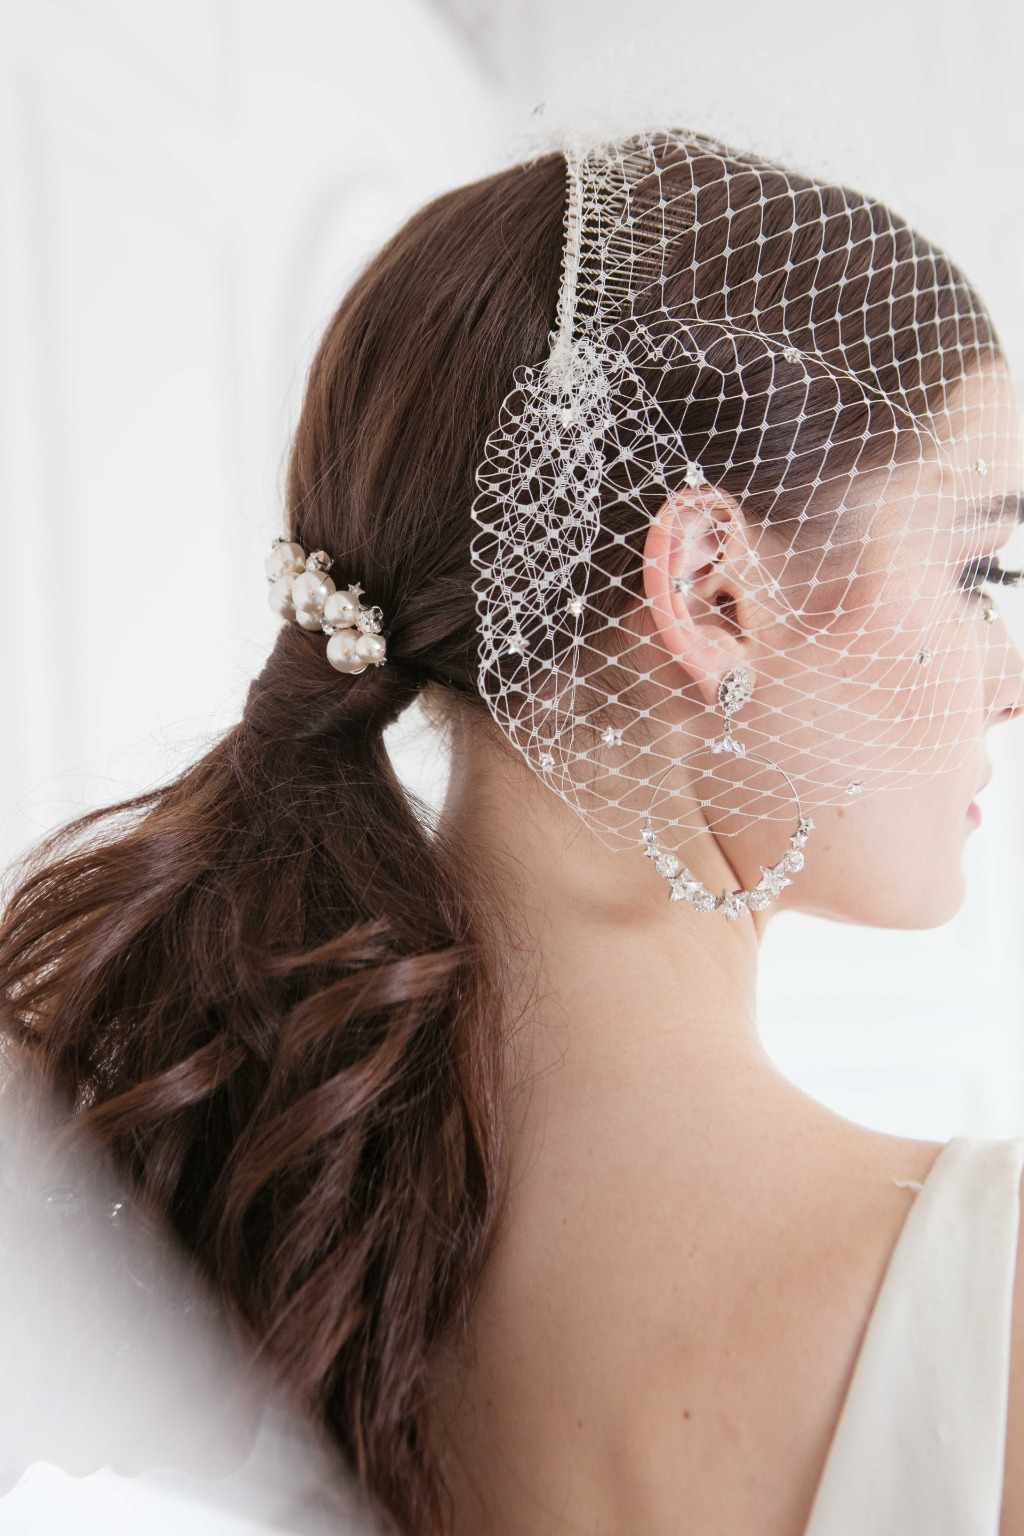 The bridal hair accessories, jewelries and face veils are all from 2020 collection.